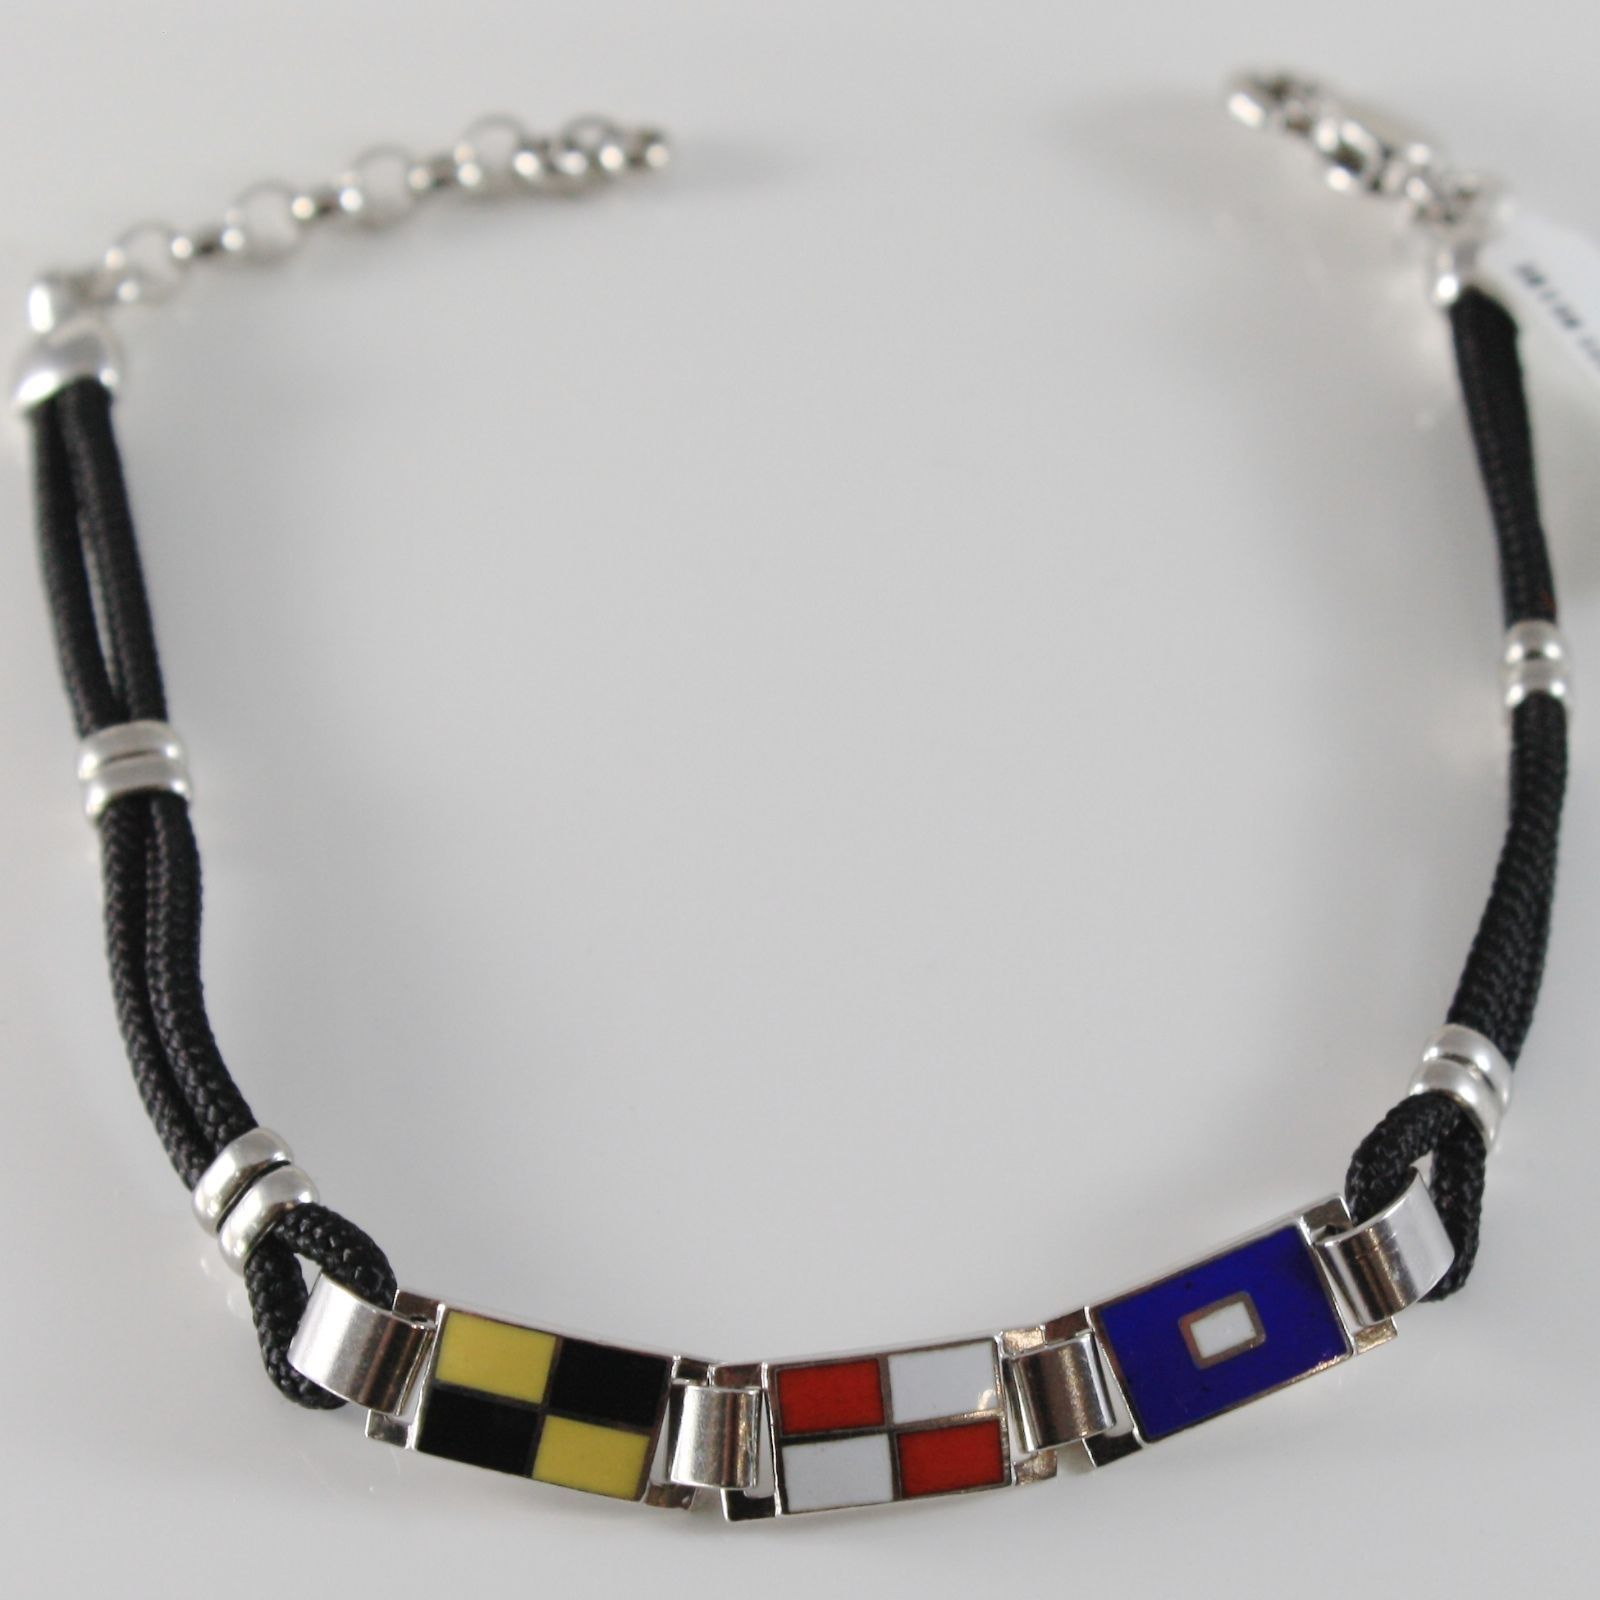 SOLID 925 SILVER WHITE BRACELET WITH GLAZED NAUTICAL FLAGS & CORD MADE IN ITALY